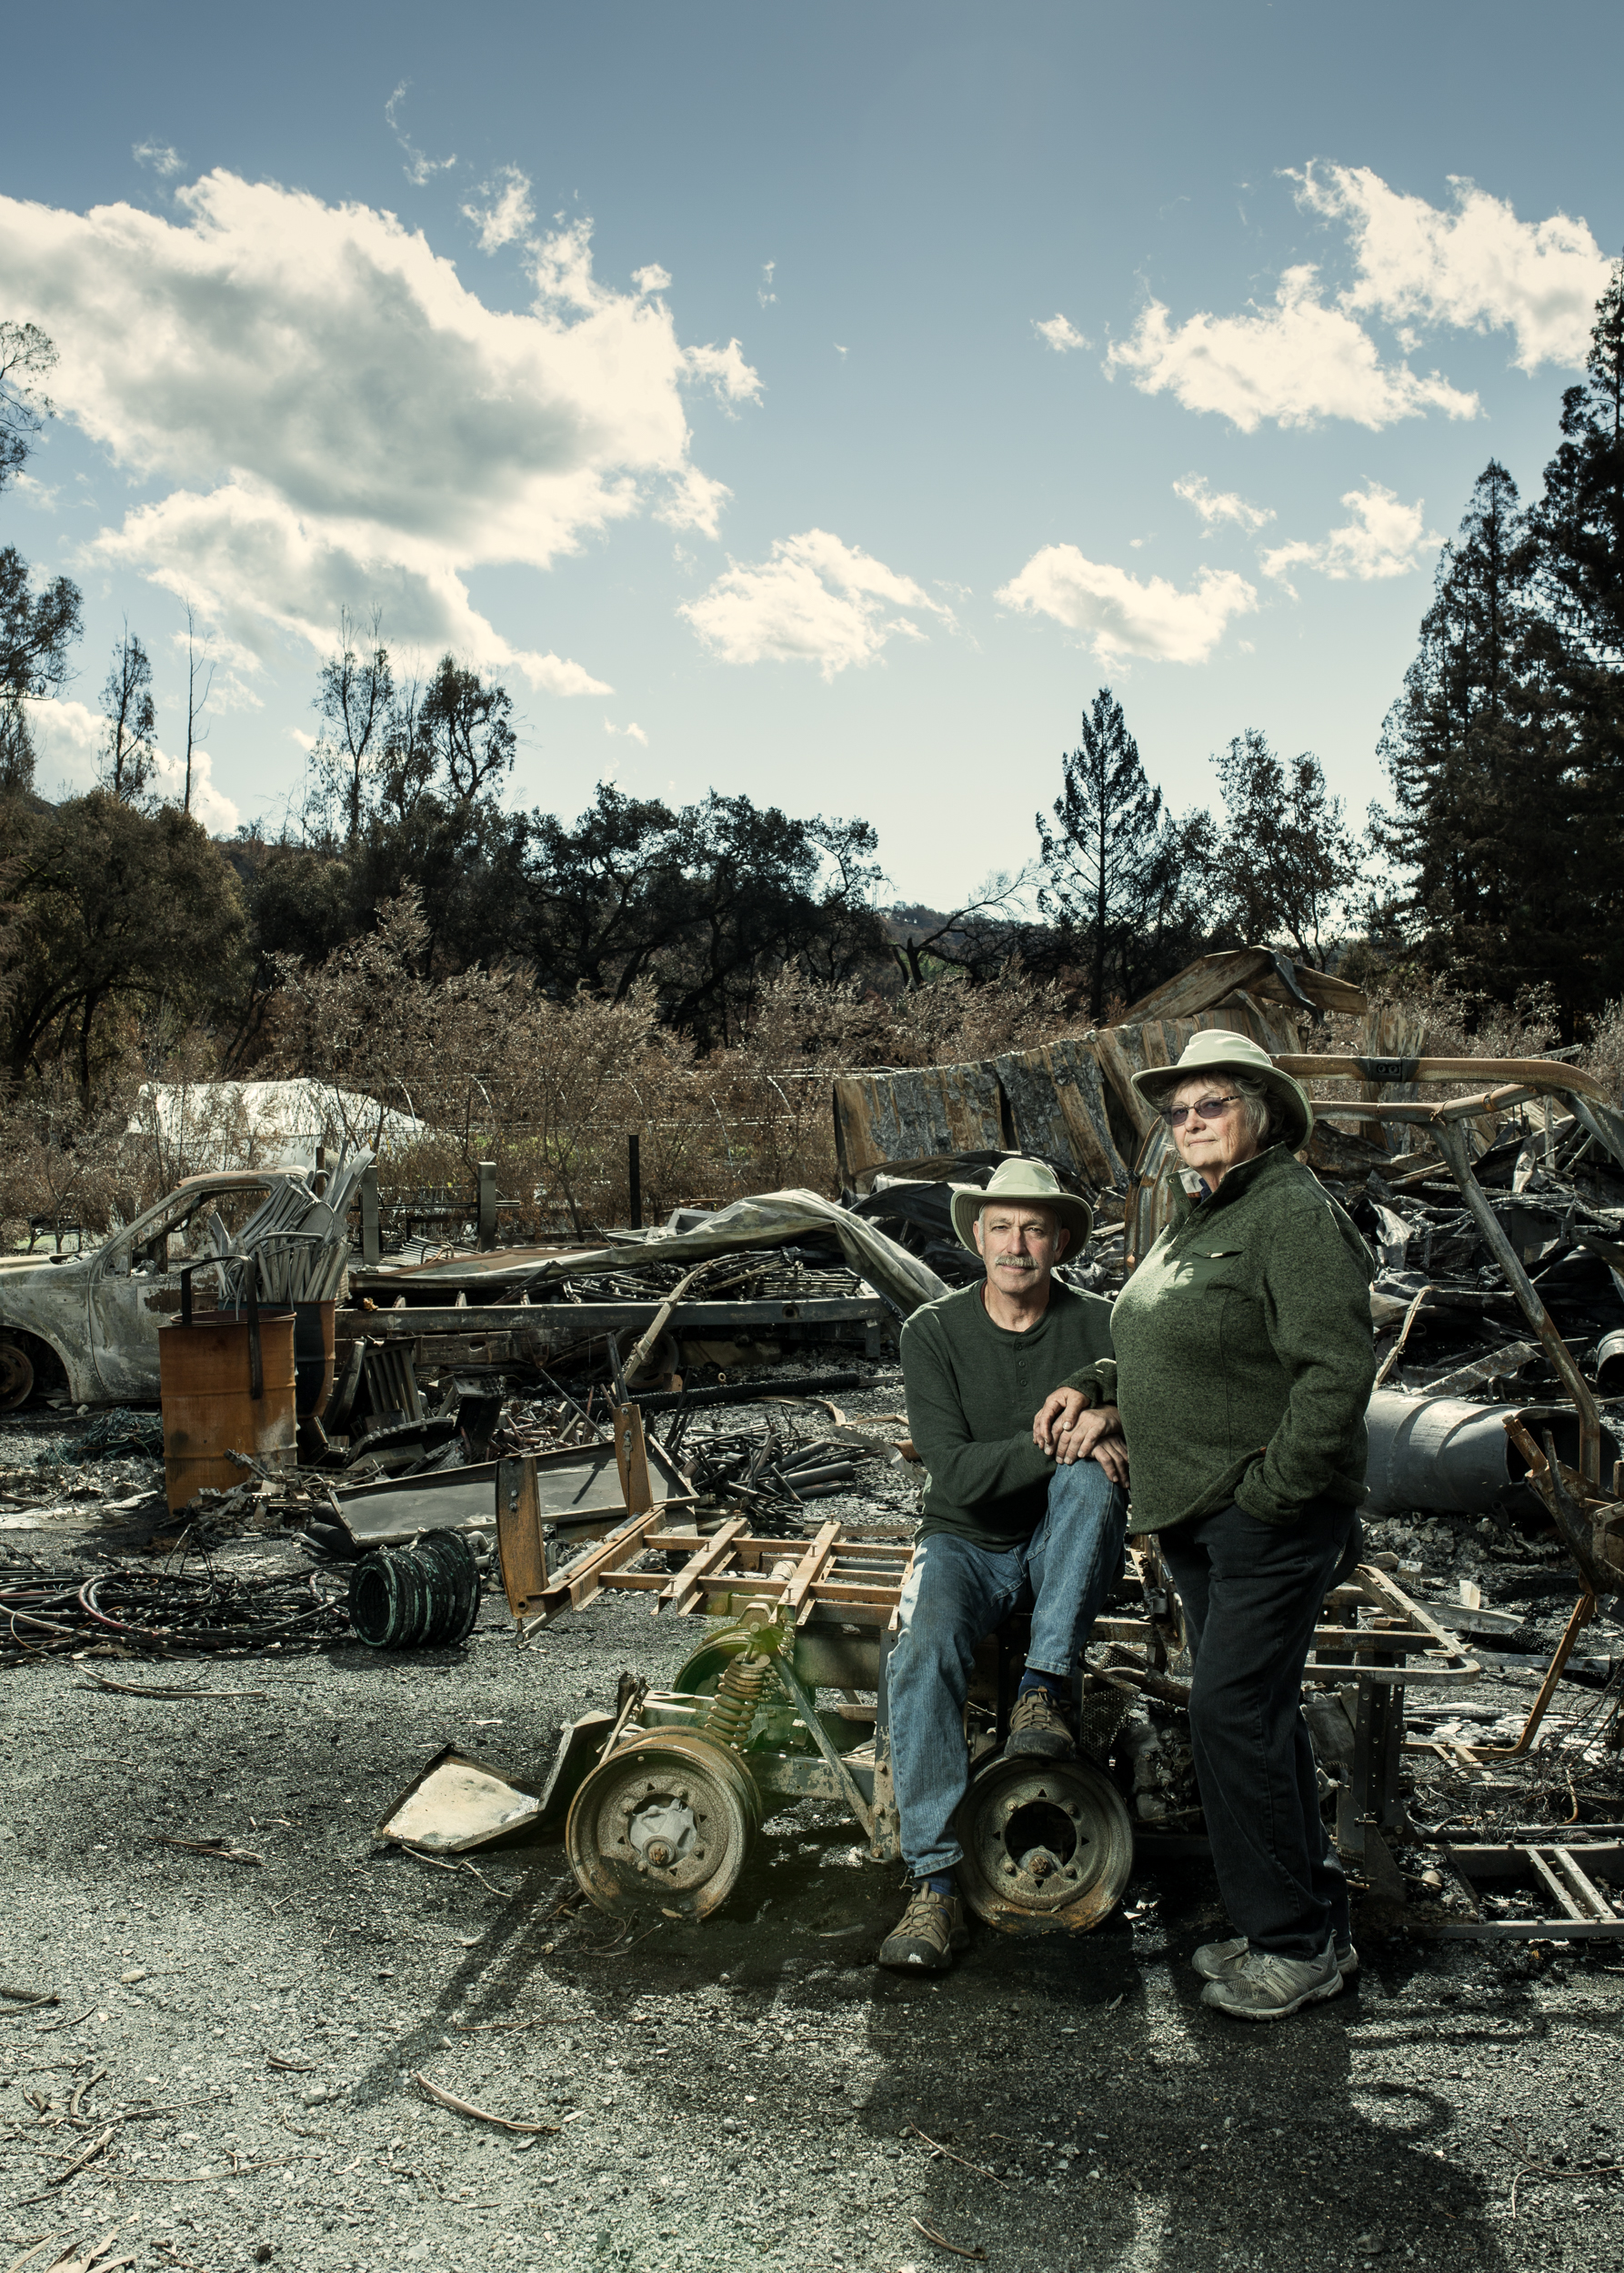 171104B_NorCal Fires_Janet and Corrie Leisen-55.jpg